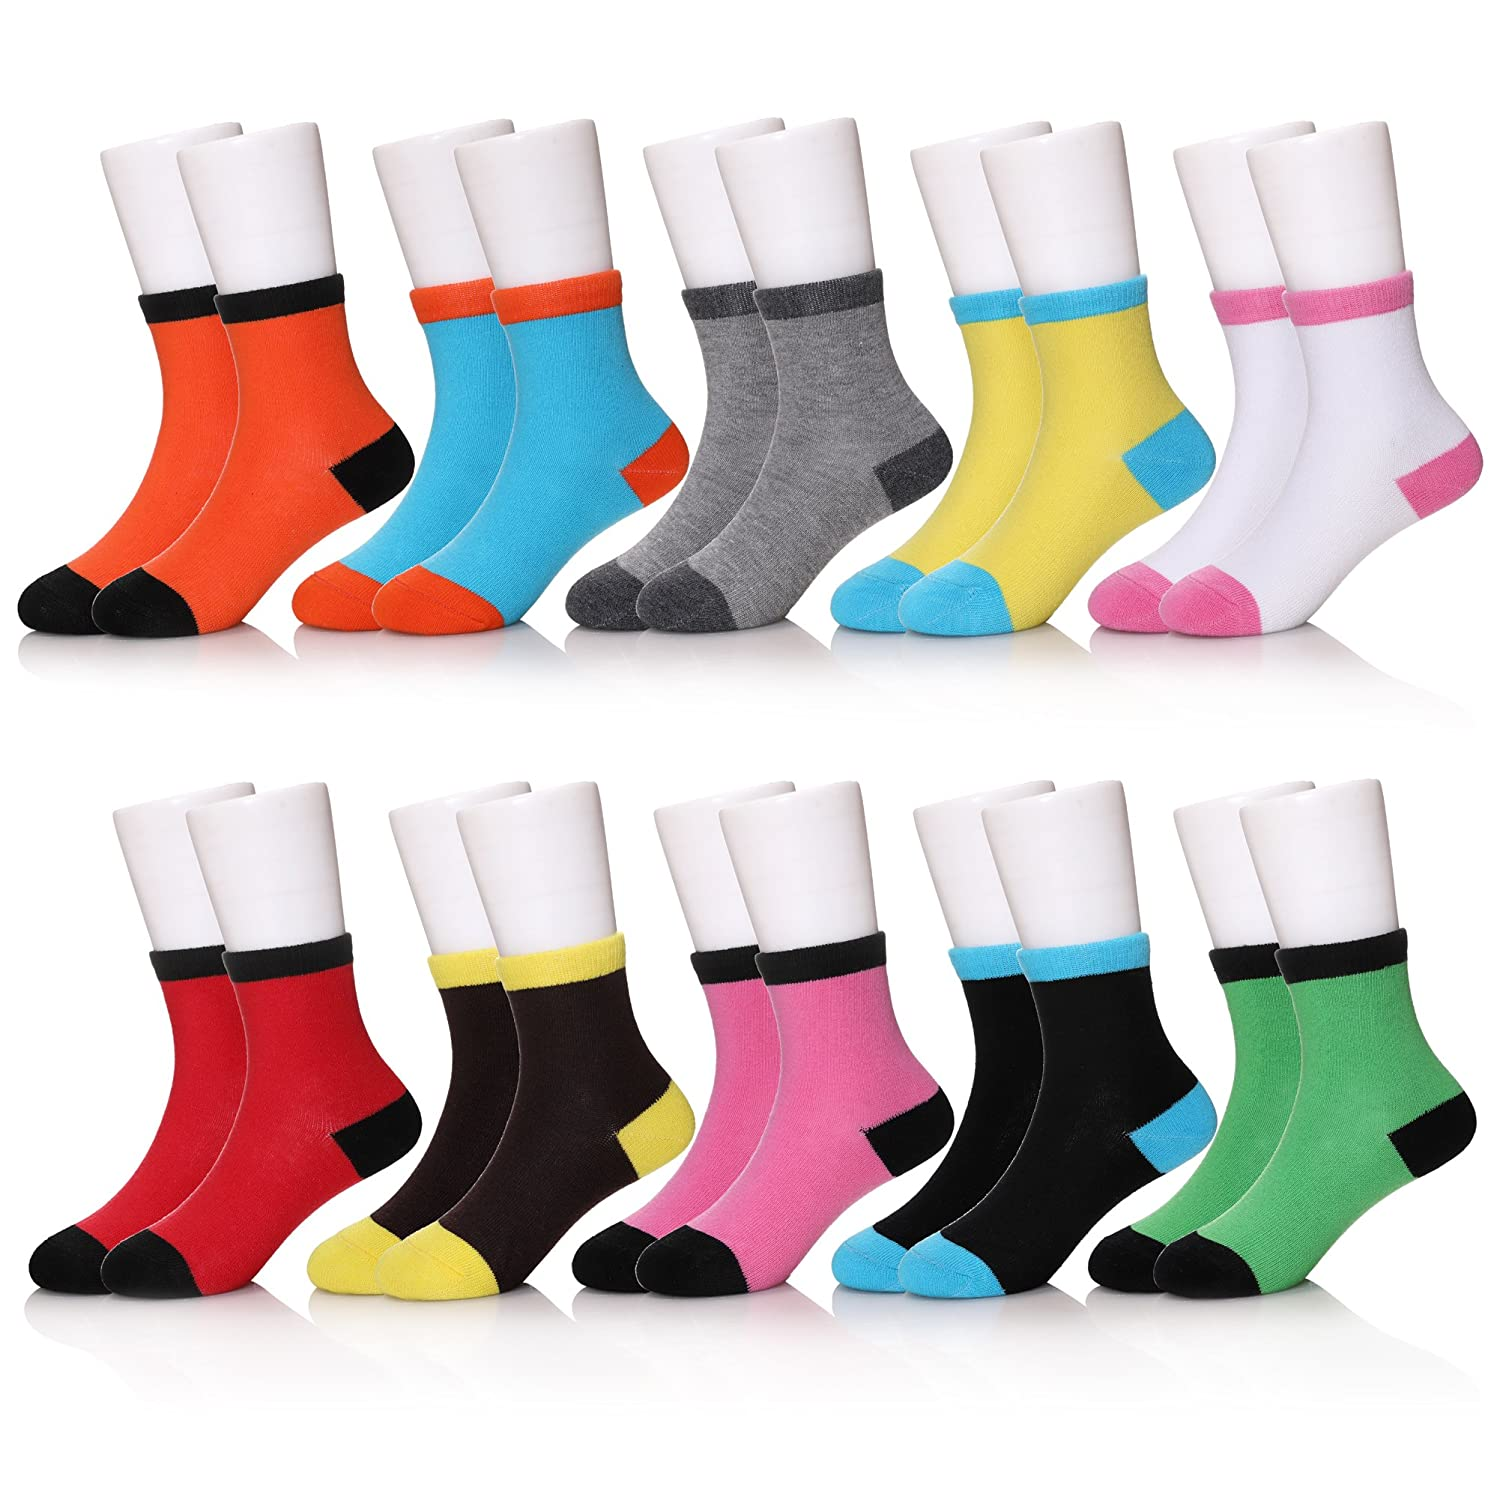 SEEYAN 10 Pairs Kids Baby Boys Girls Casual Colorful Cotton Breathable Warm Soft Crew Socks 10 Pairs Colorful, 7-9 Years